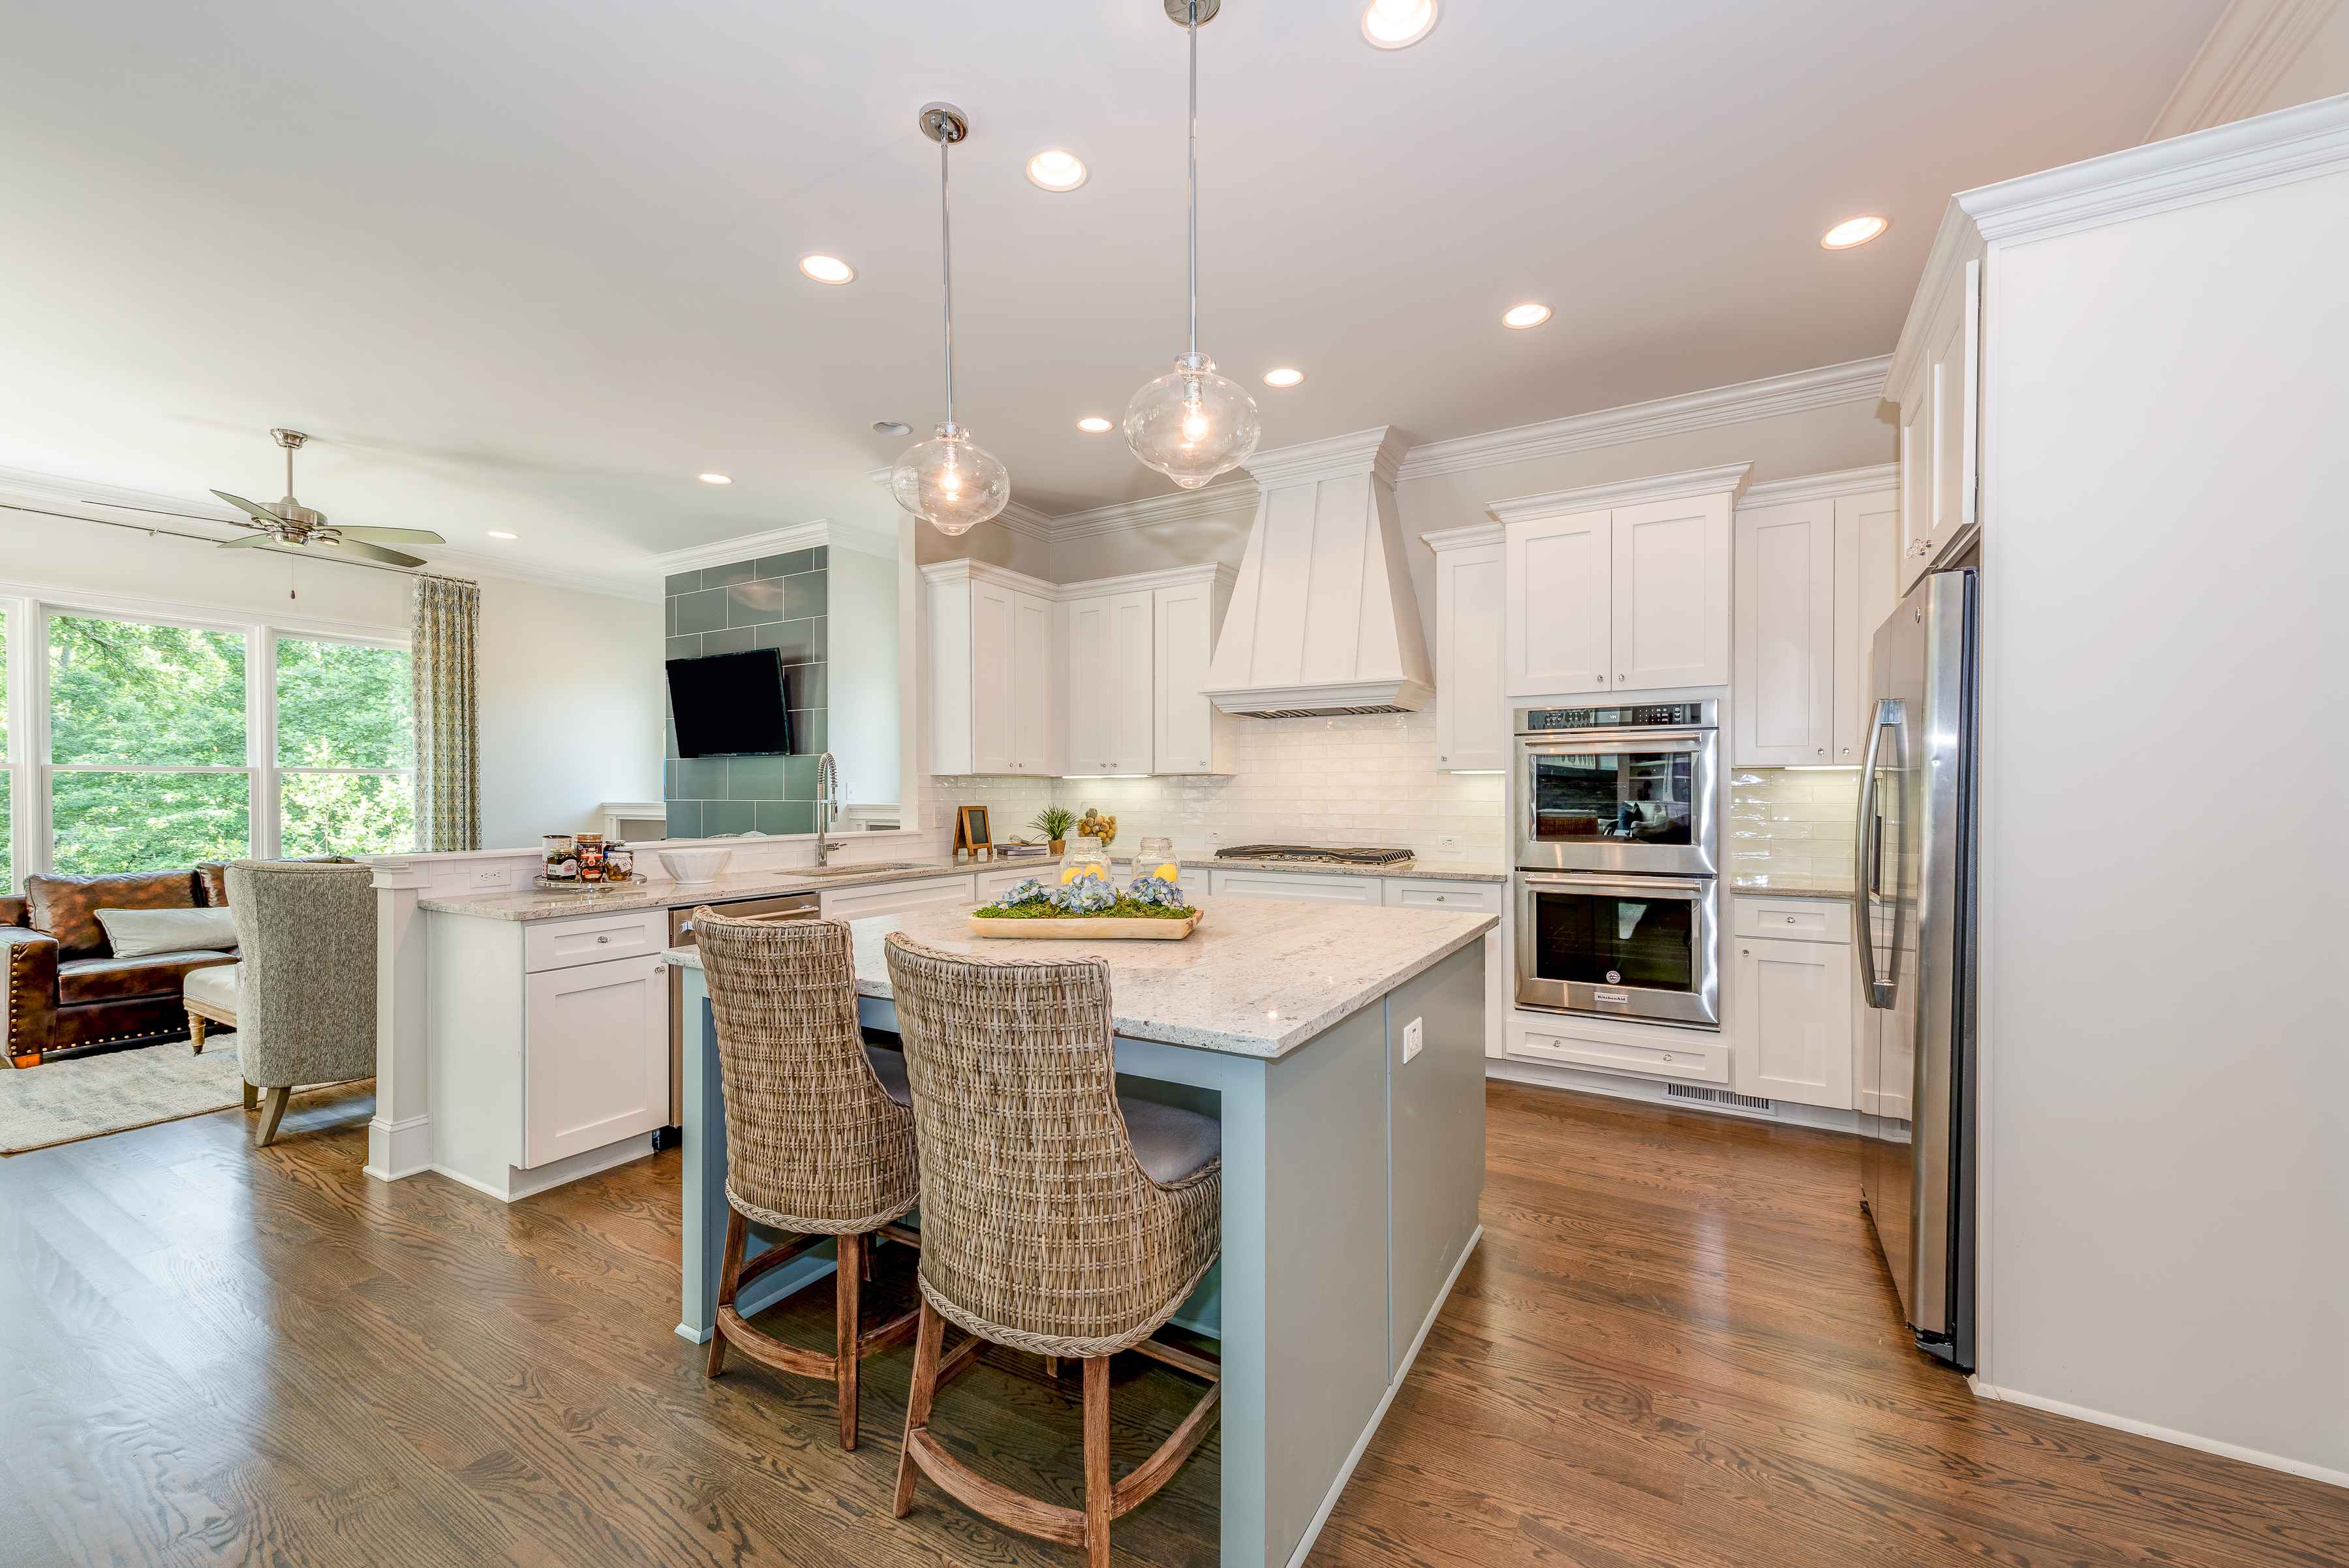 Peachtree Residential to Feature Two Communities in Atlanta Parade of Homes